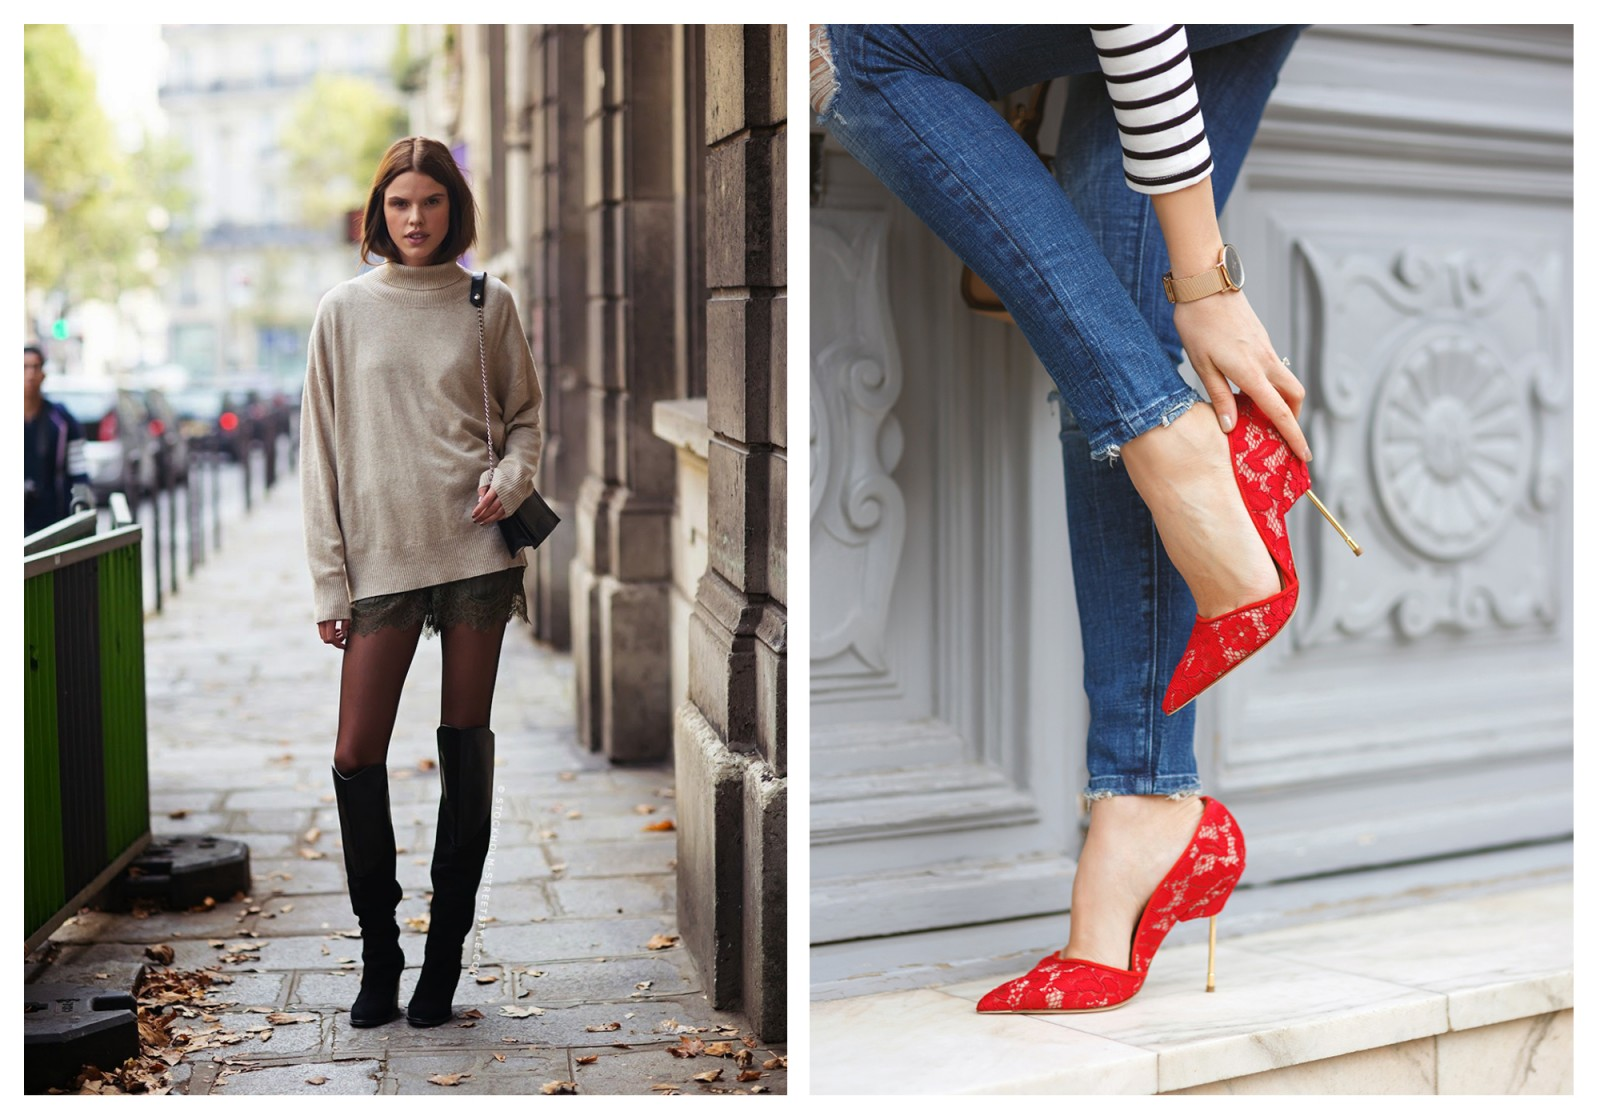 French Chic is all about decoding the Secrets of Paris Fashion, like this Parisian woman who wears a short skirt but with a baggy sweater so it doesn't look tarty (left). French women are good at teaming casual jeans with high heels like these red one with a gold stiletto heel (right).